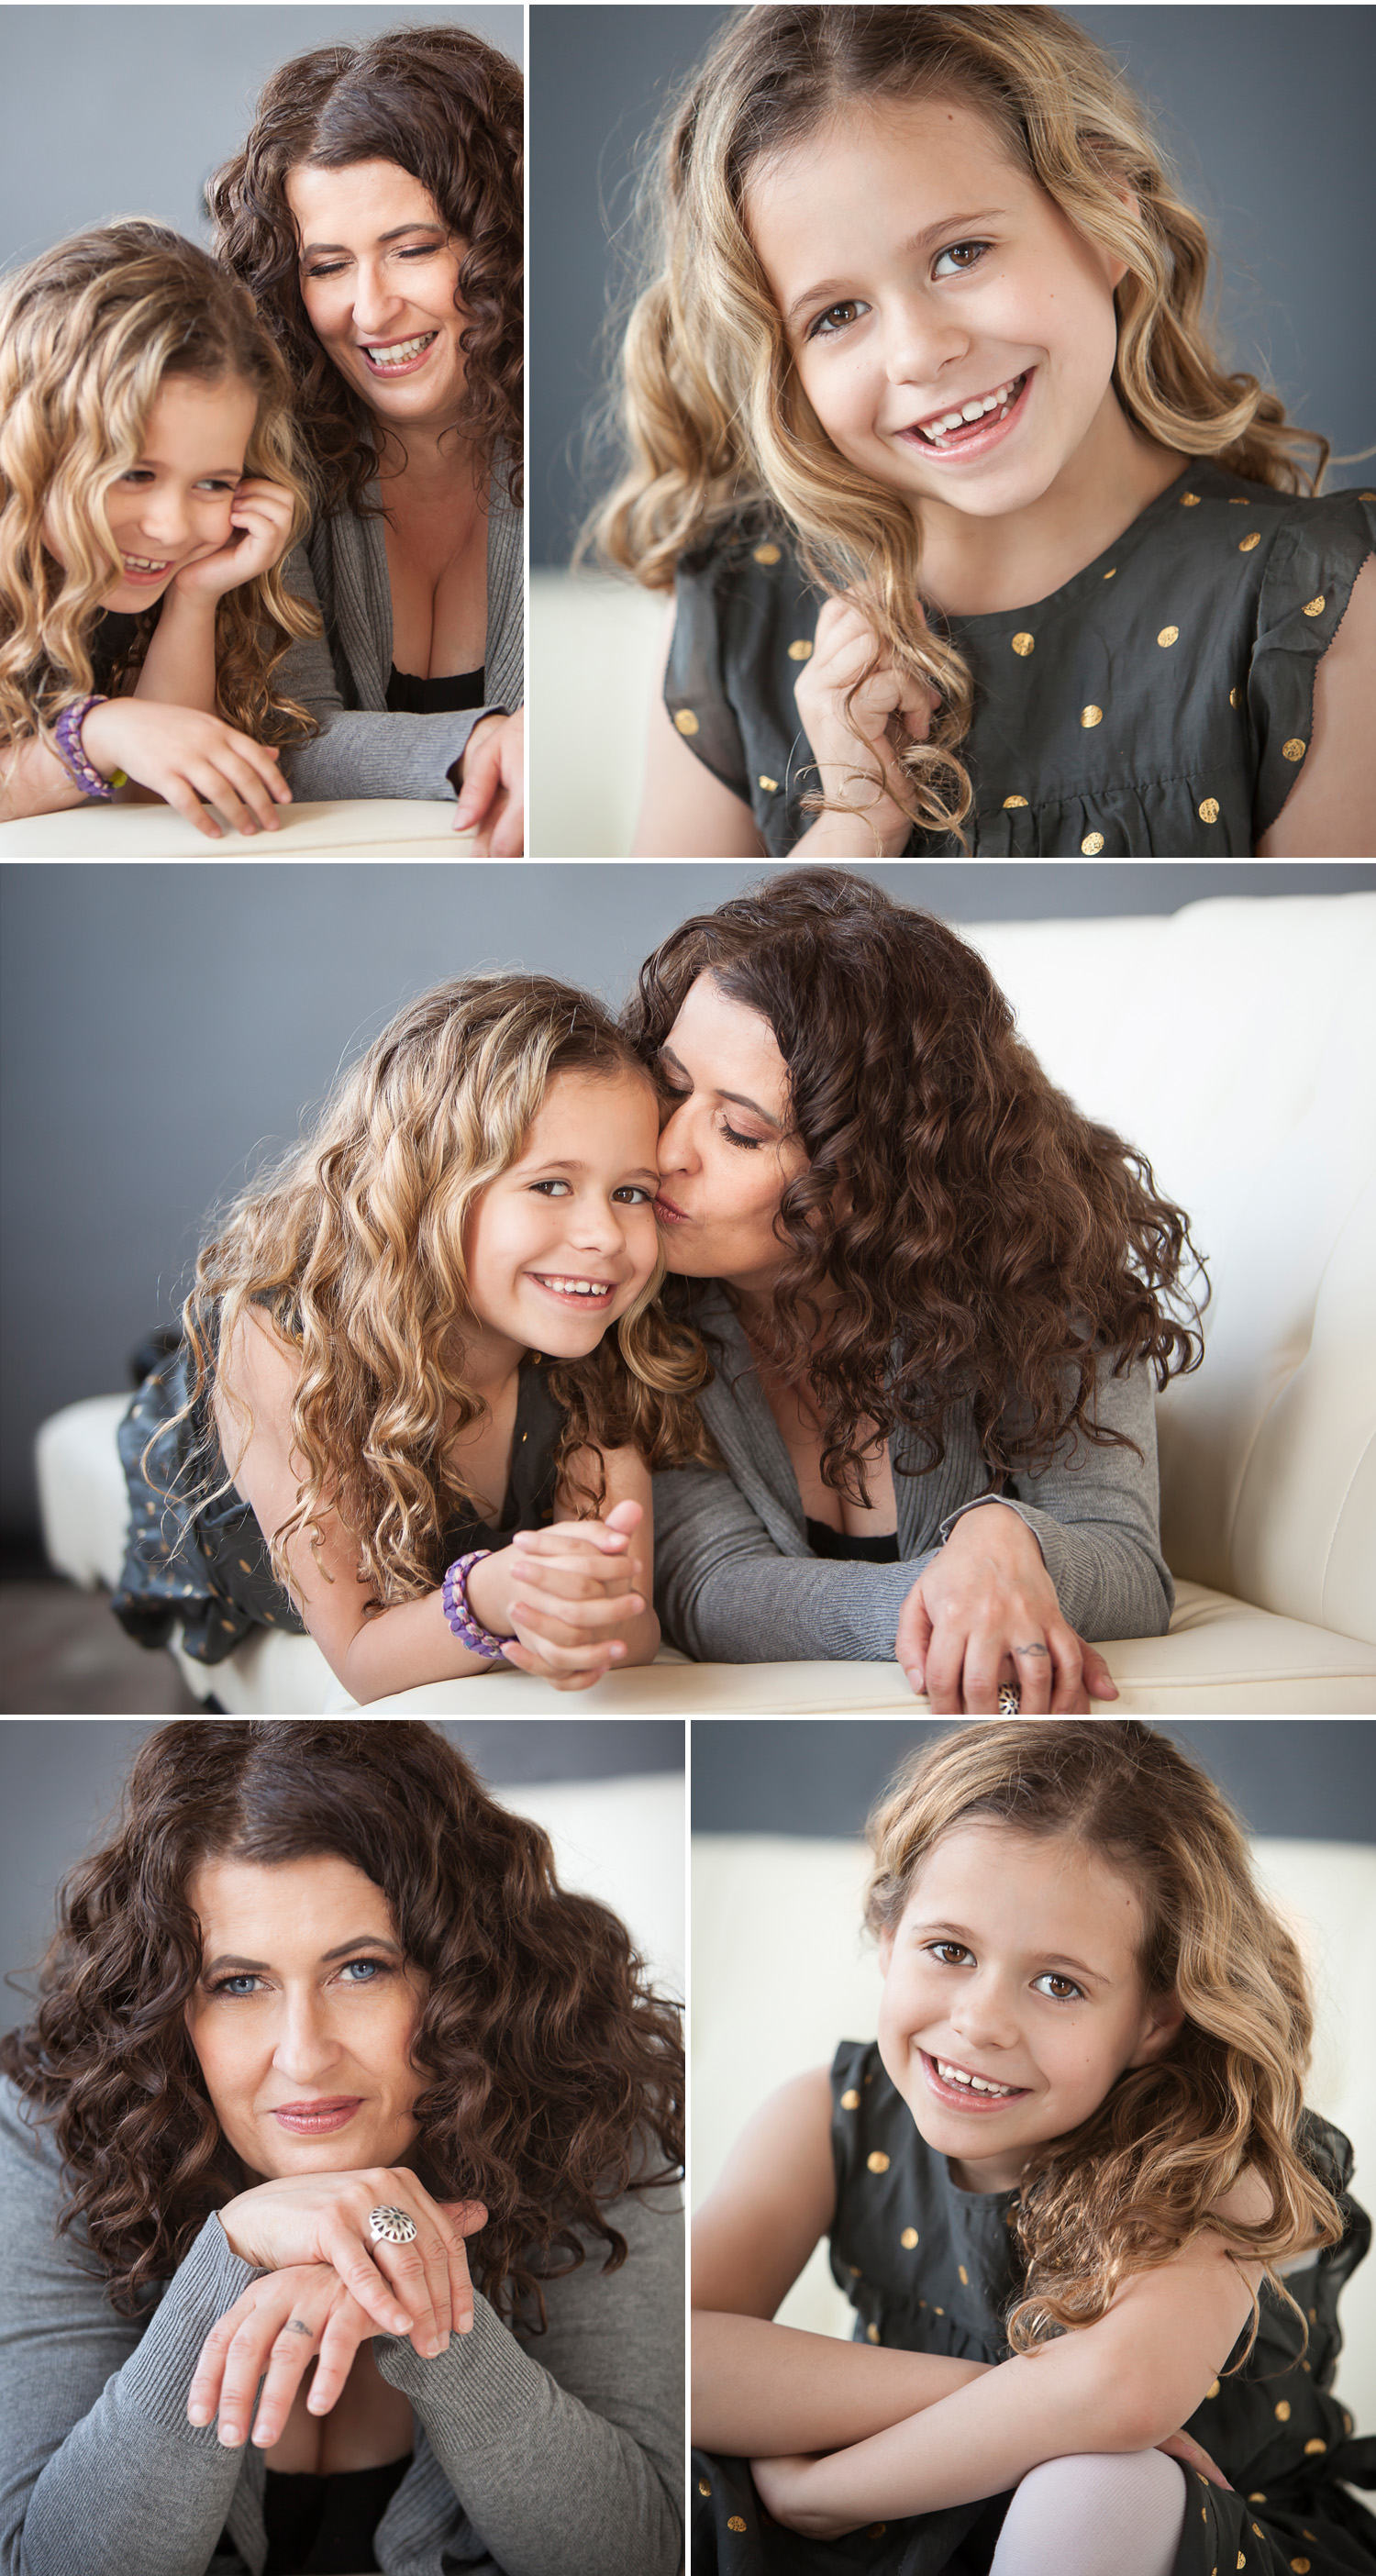 mother daughter pictures by Denver portrait photographer Jennifer Koskinen, Merritt Portrait Studio